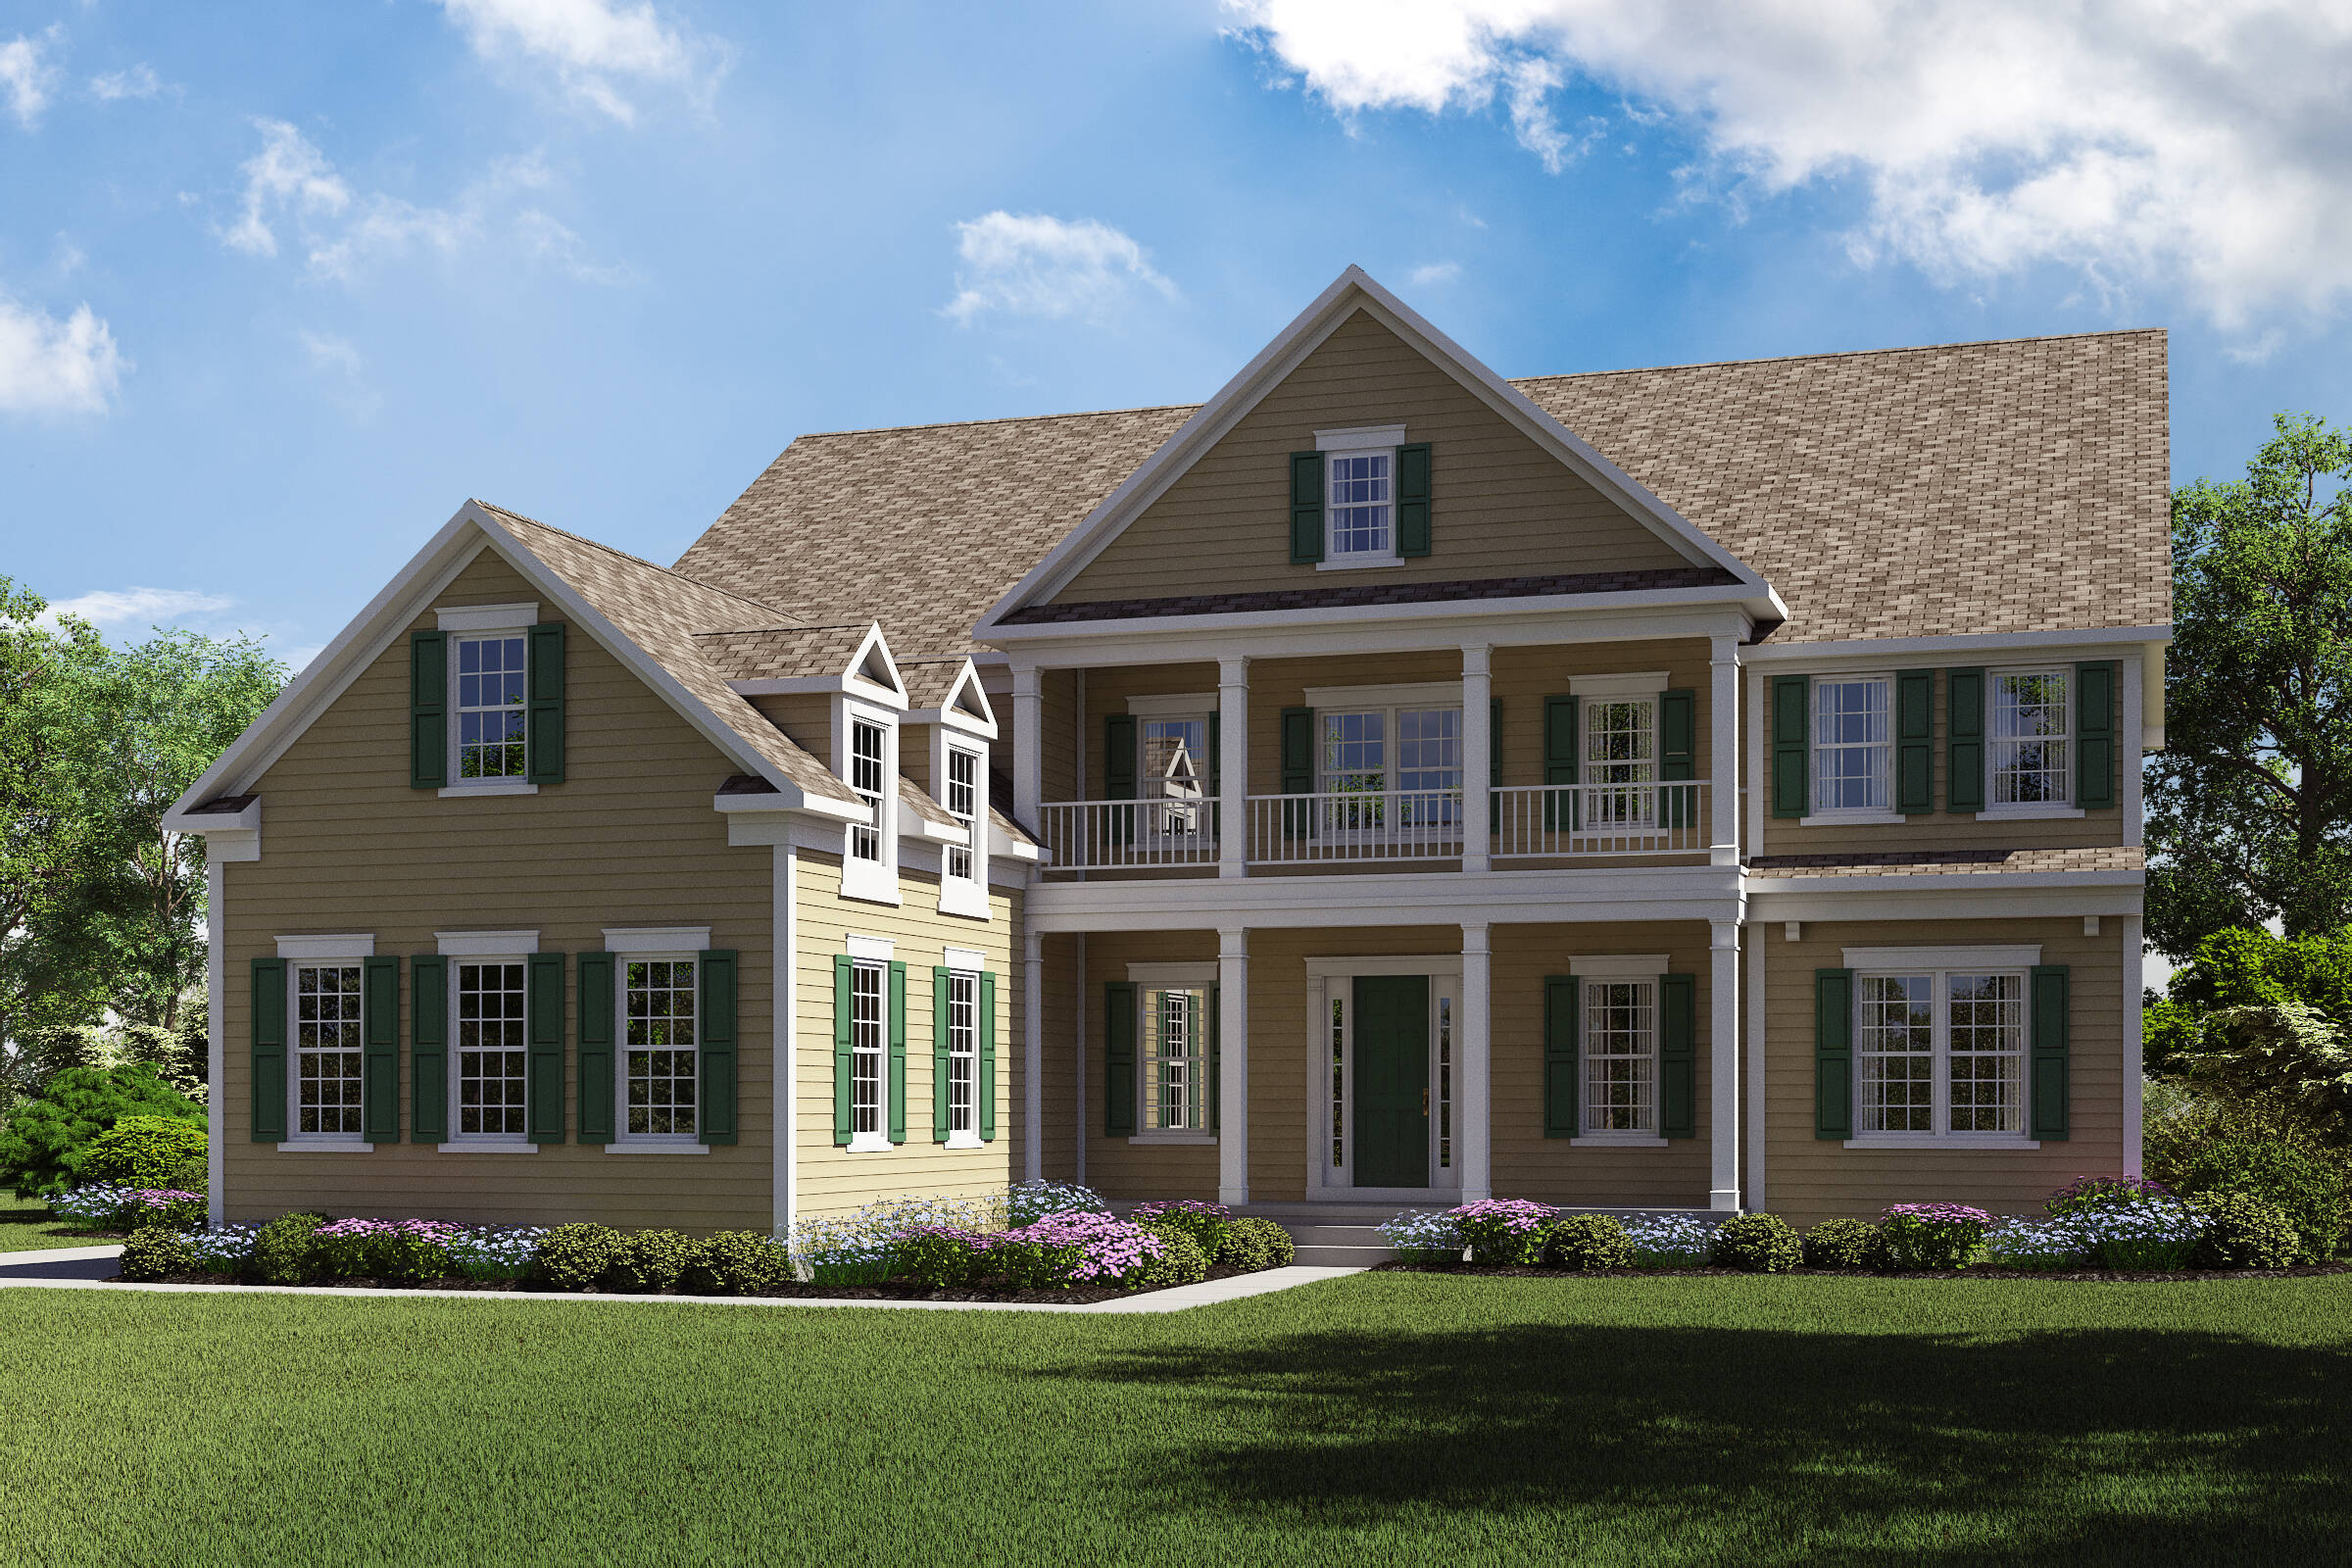 Monaco-HS-SL-elev new homes in new jersey